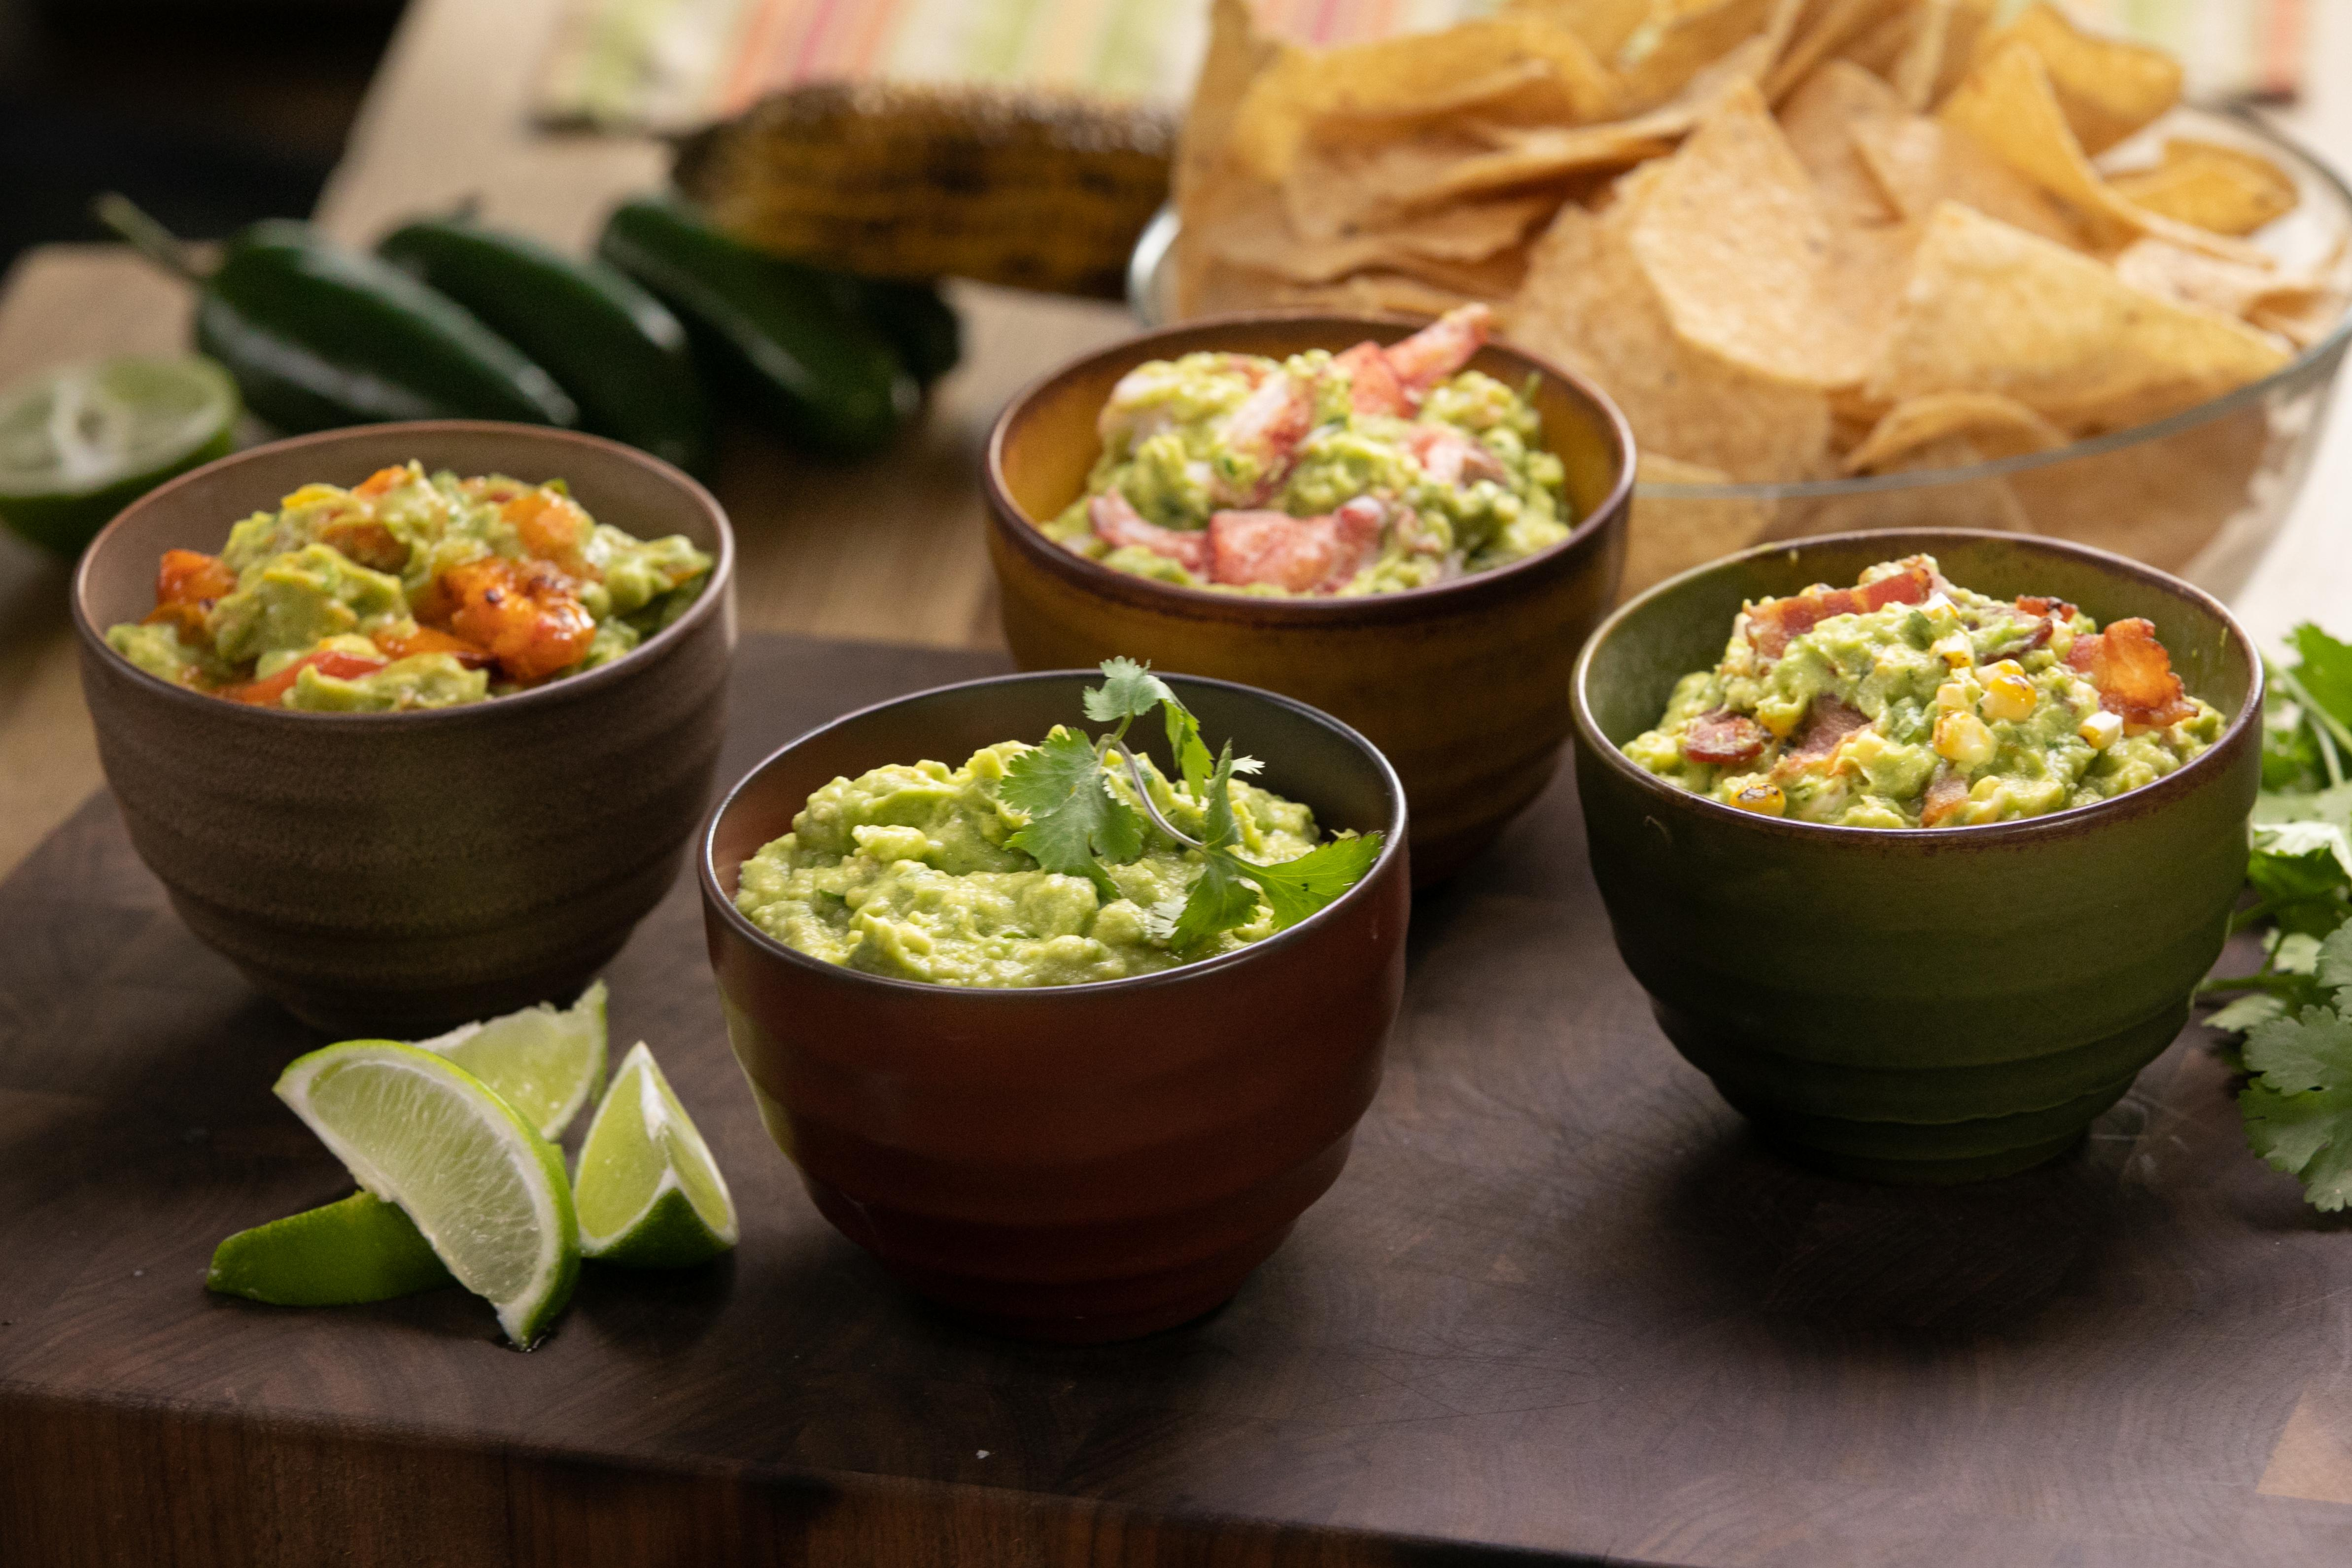 4 ways to make ridiculously tasty guacamole